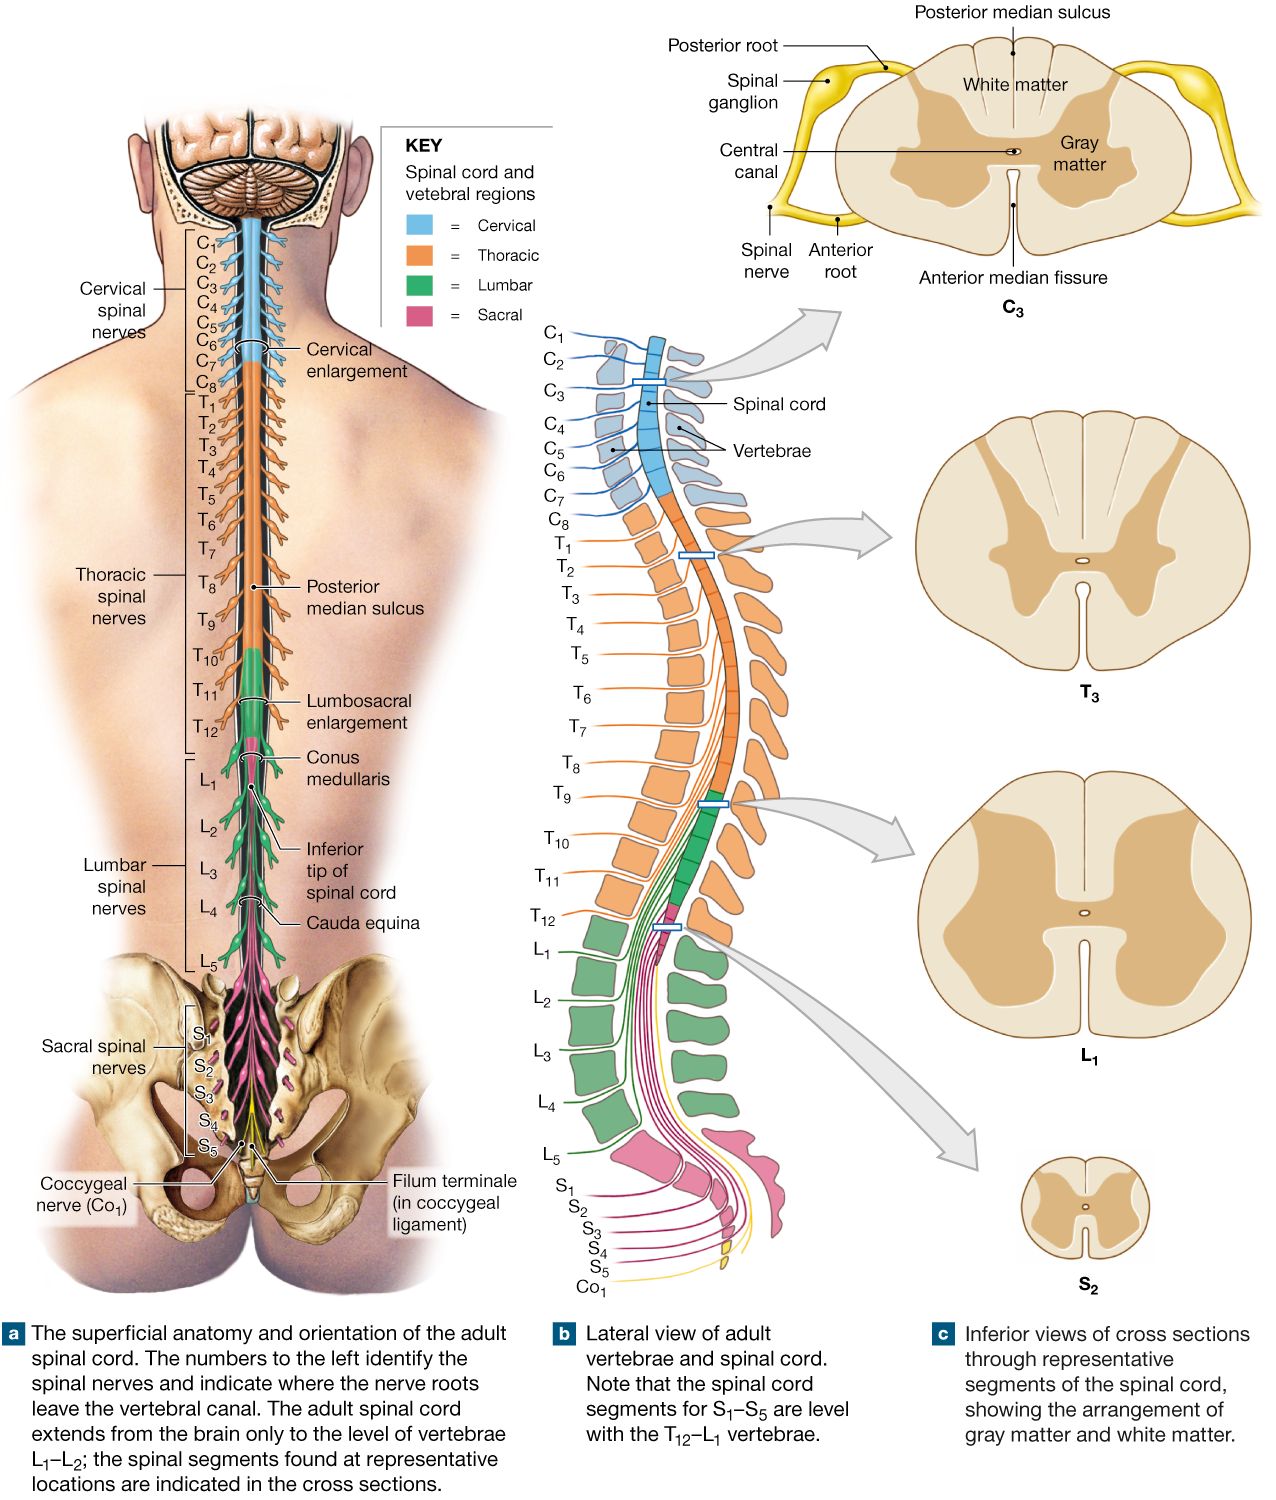 13 2 The Spinal Cord Is Surrounded By Three Meninges And